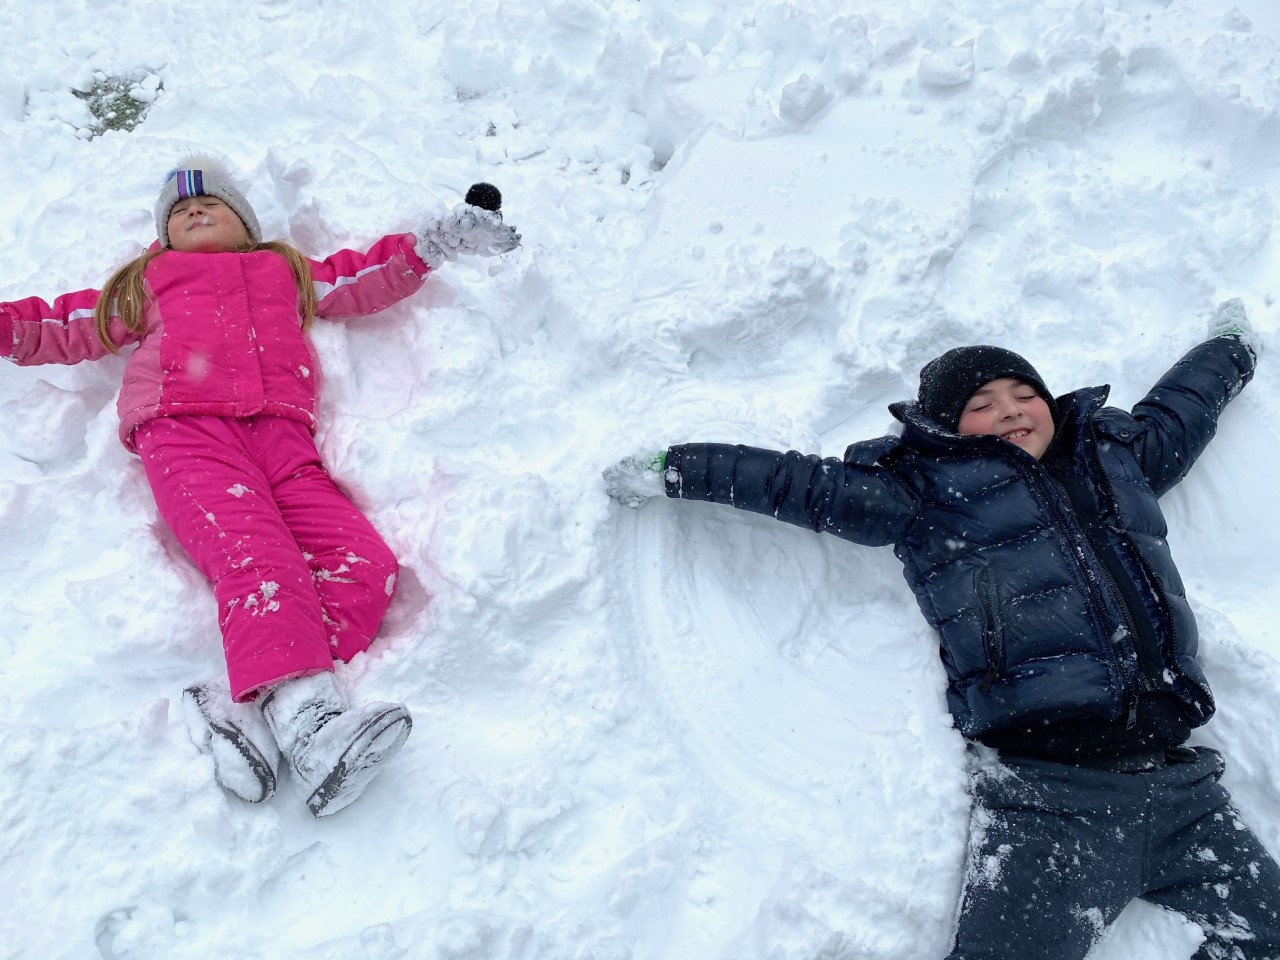 one girl in pink and a boy in black coat making a snow angel